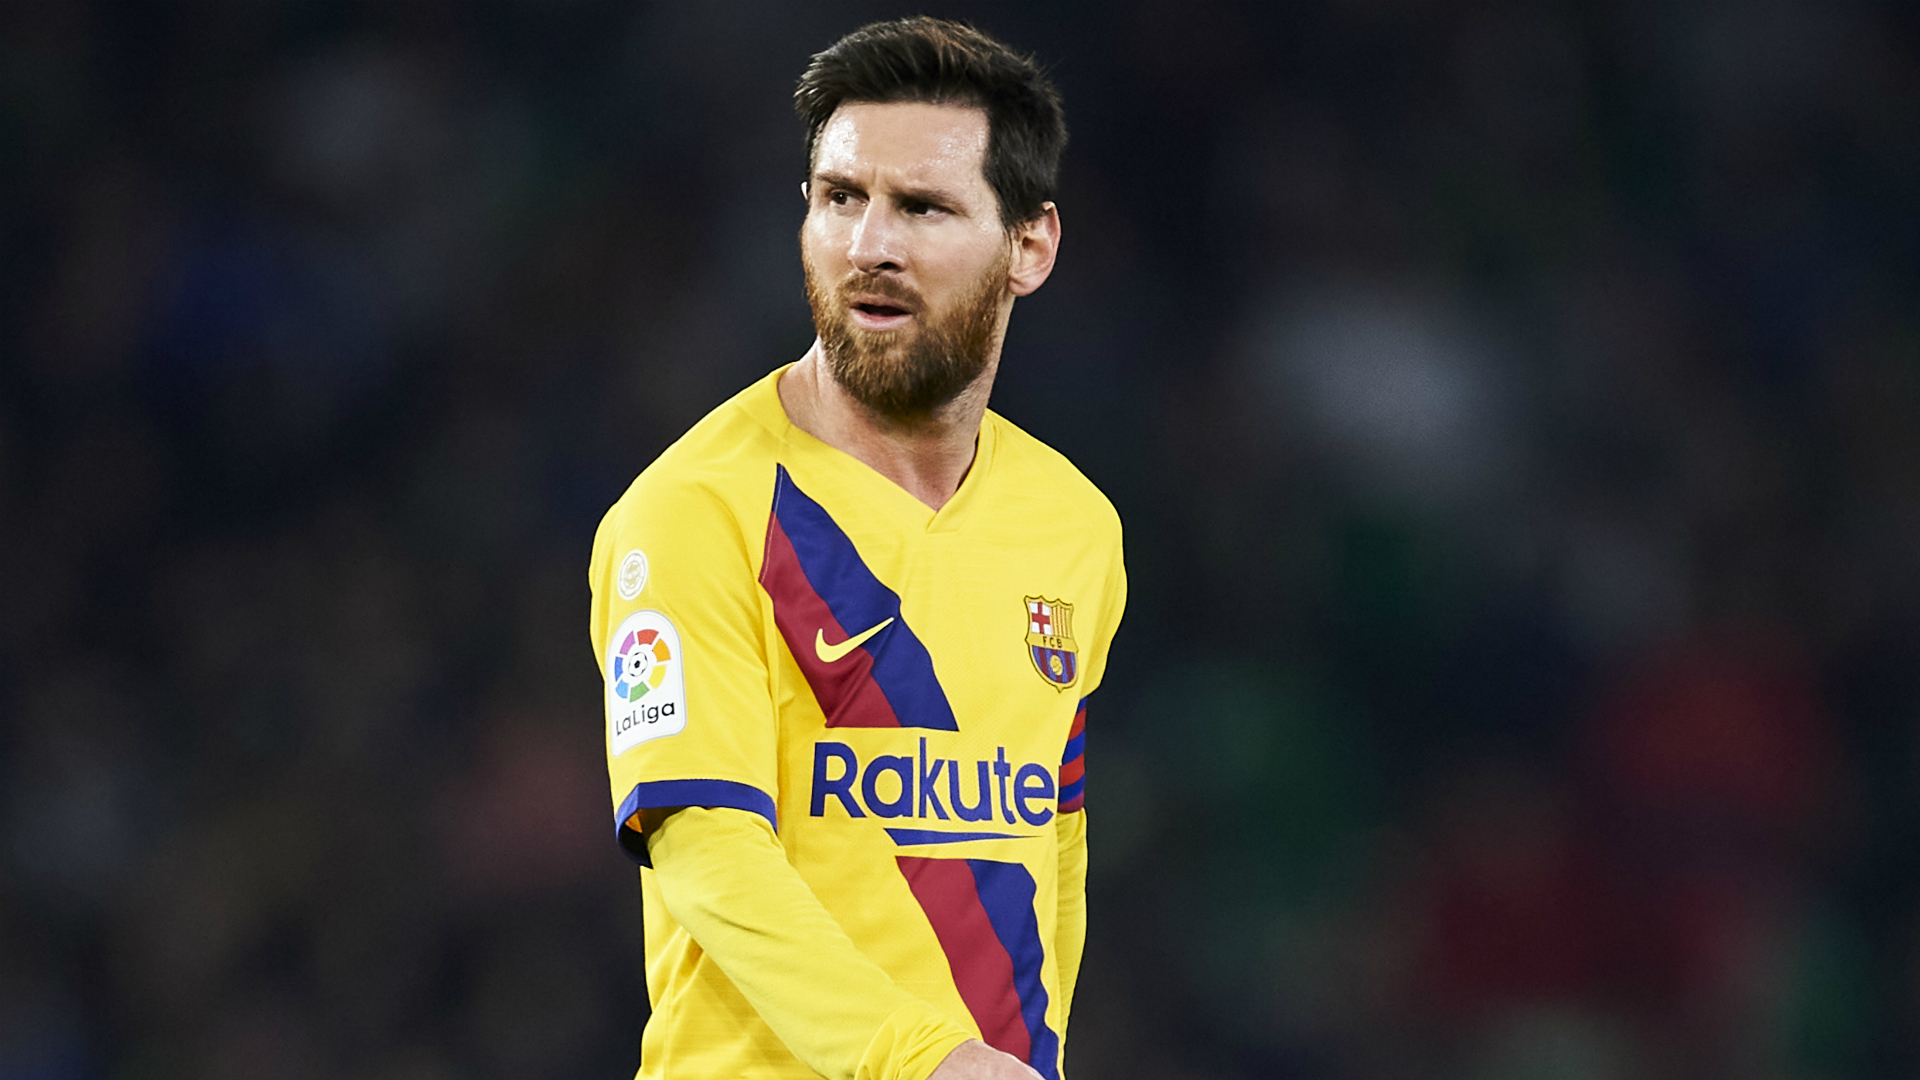 Messi to Napoli? You can never say never in football – Pique